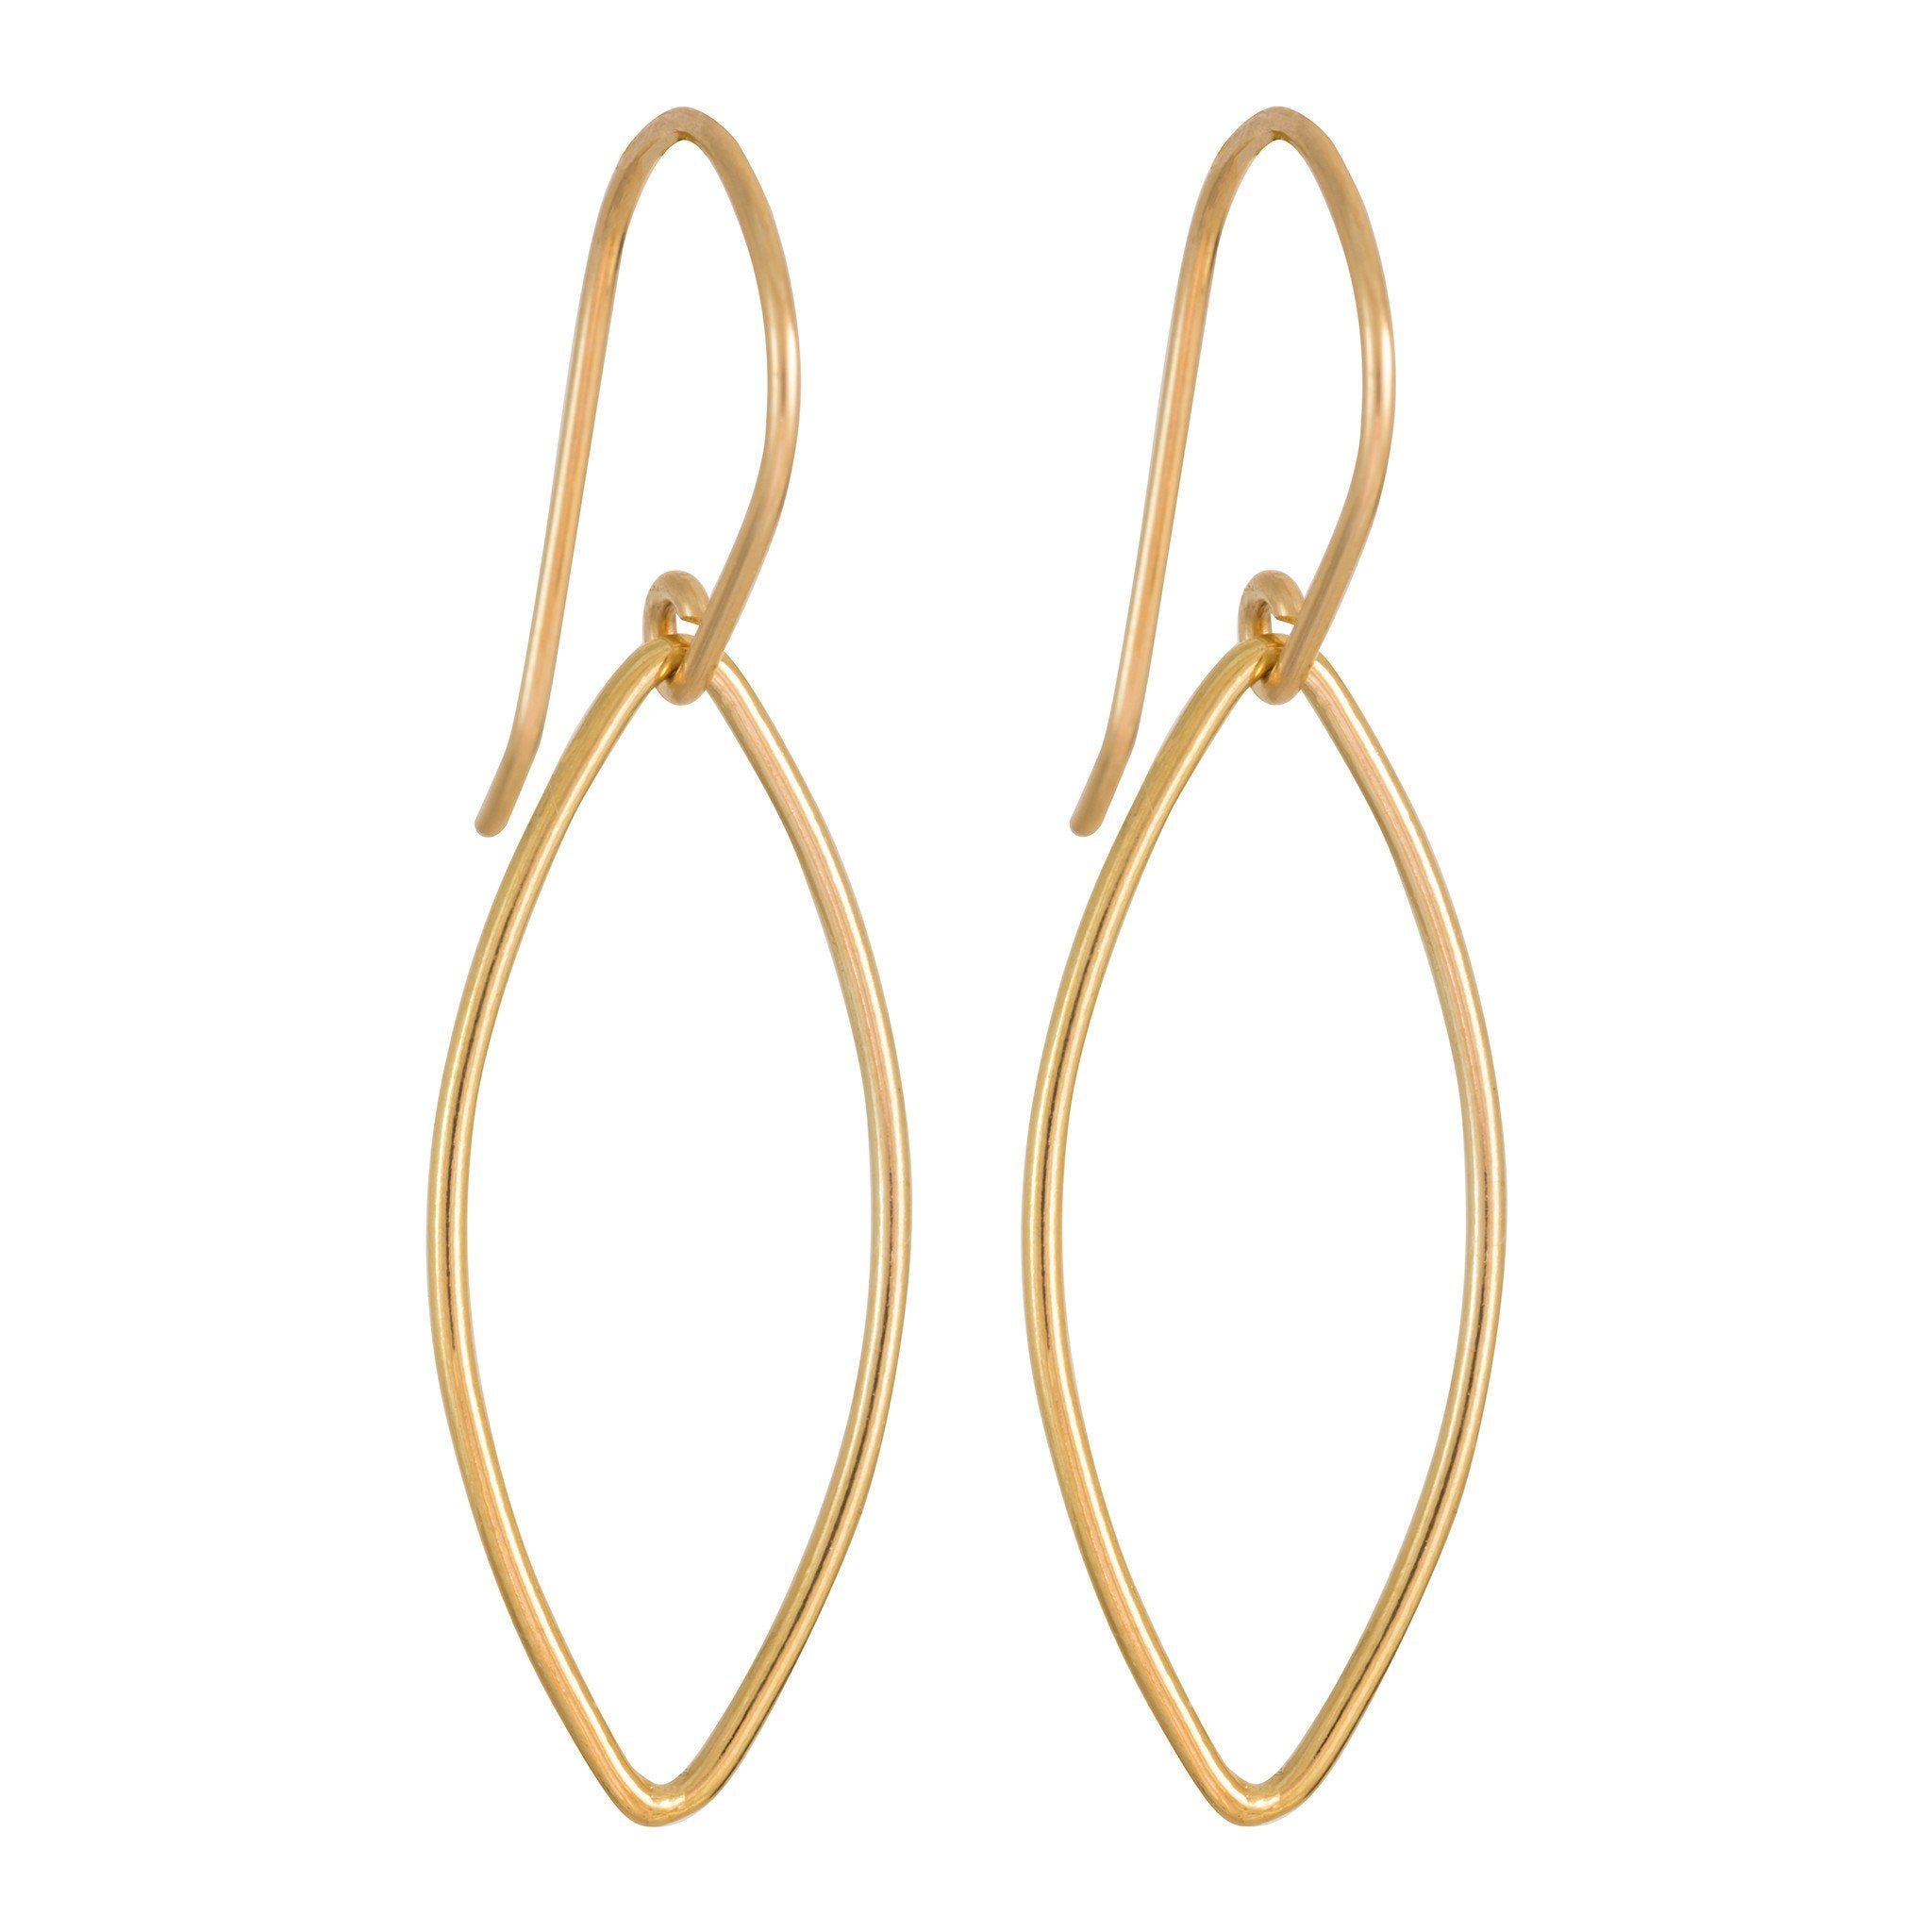 earrings gold weight p hoop grams square plated tube sterling silver length oval width